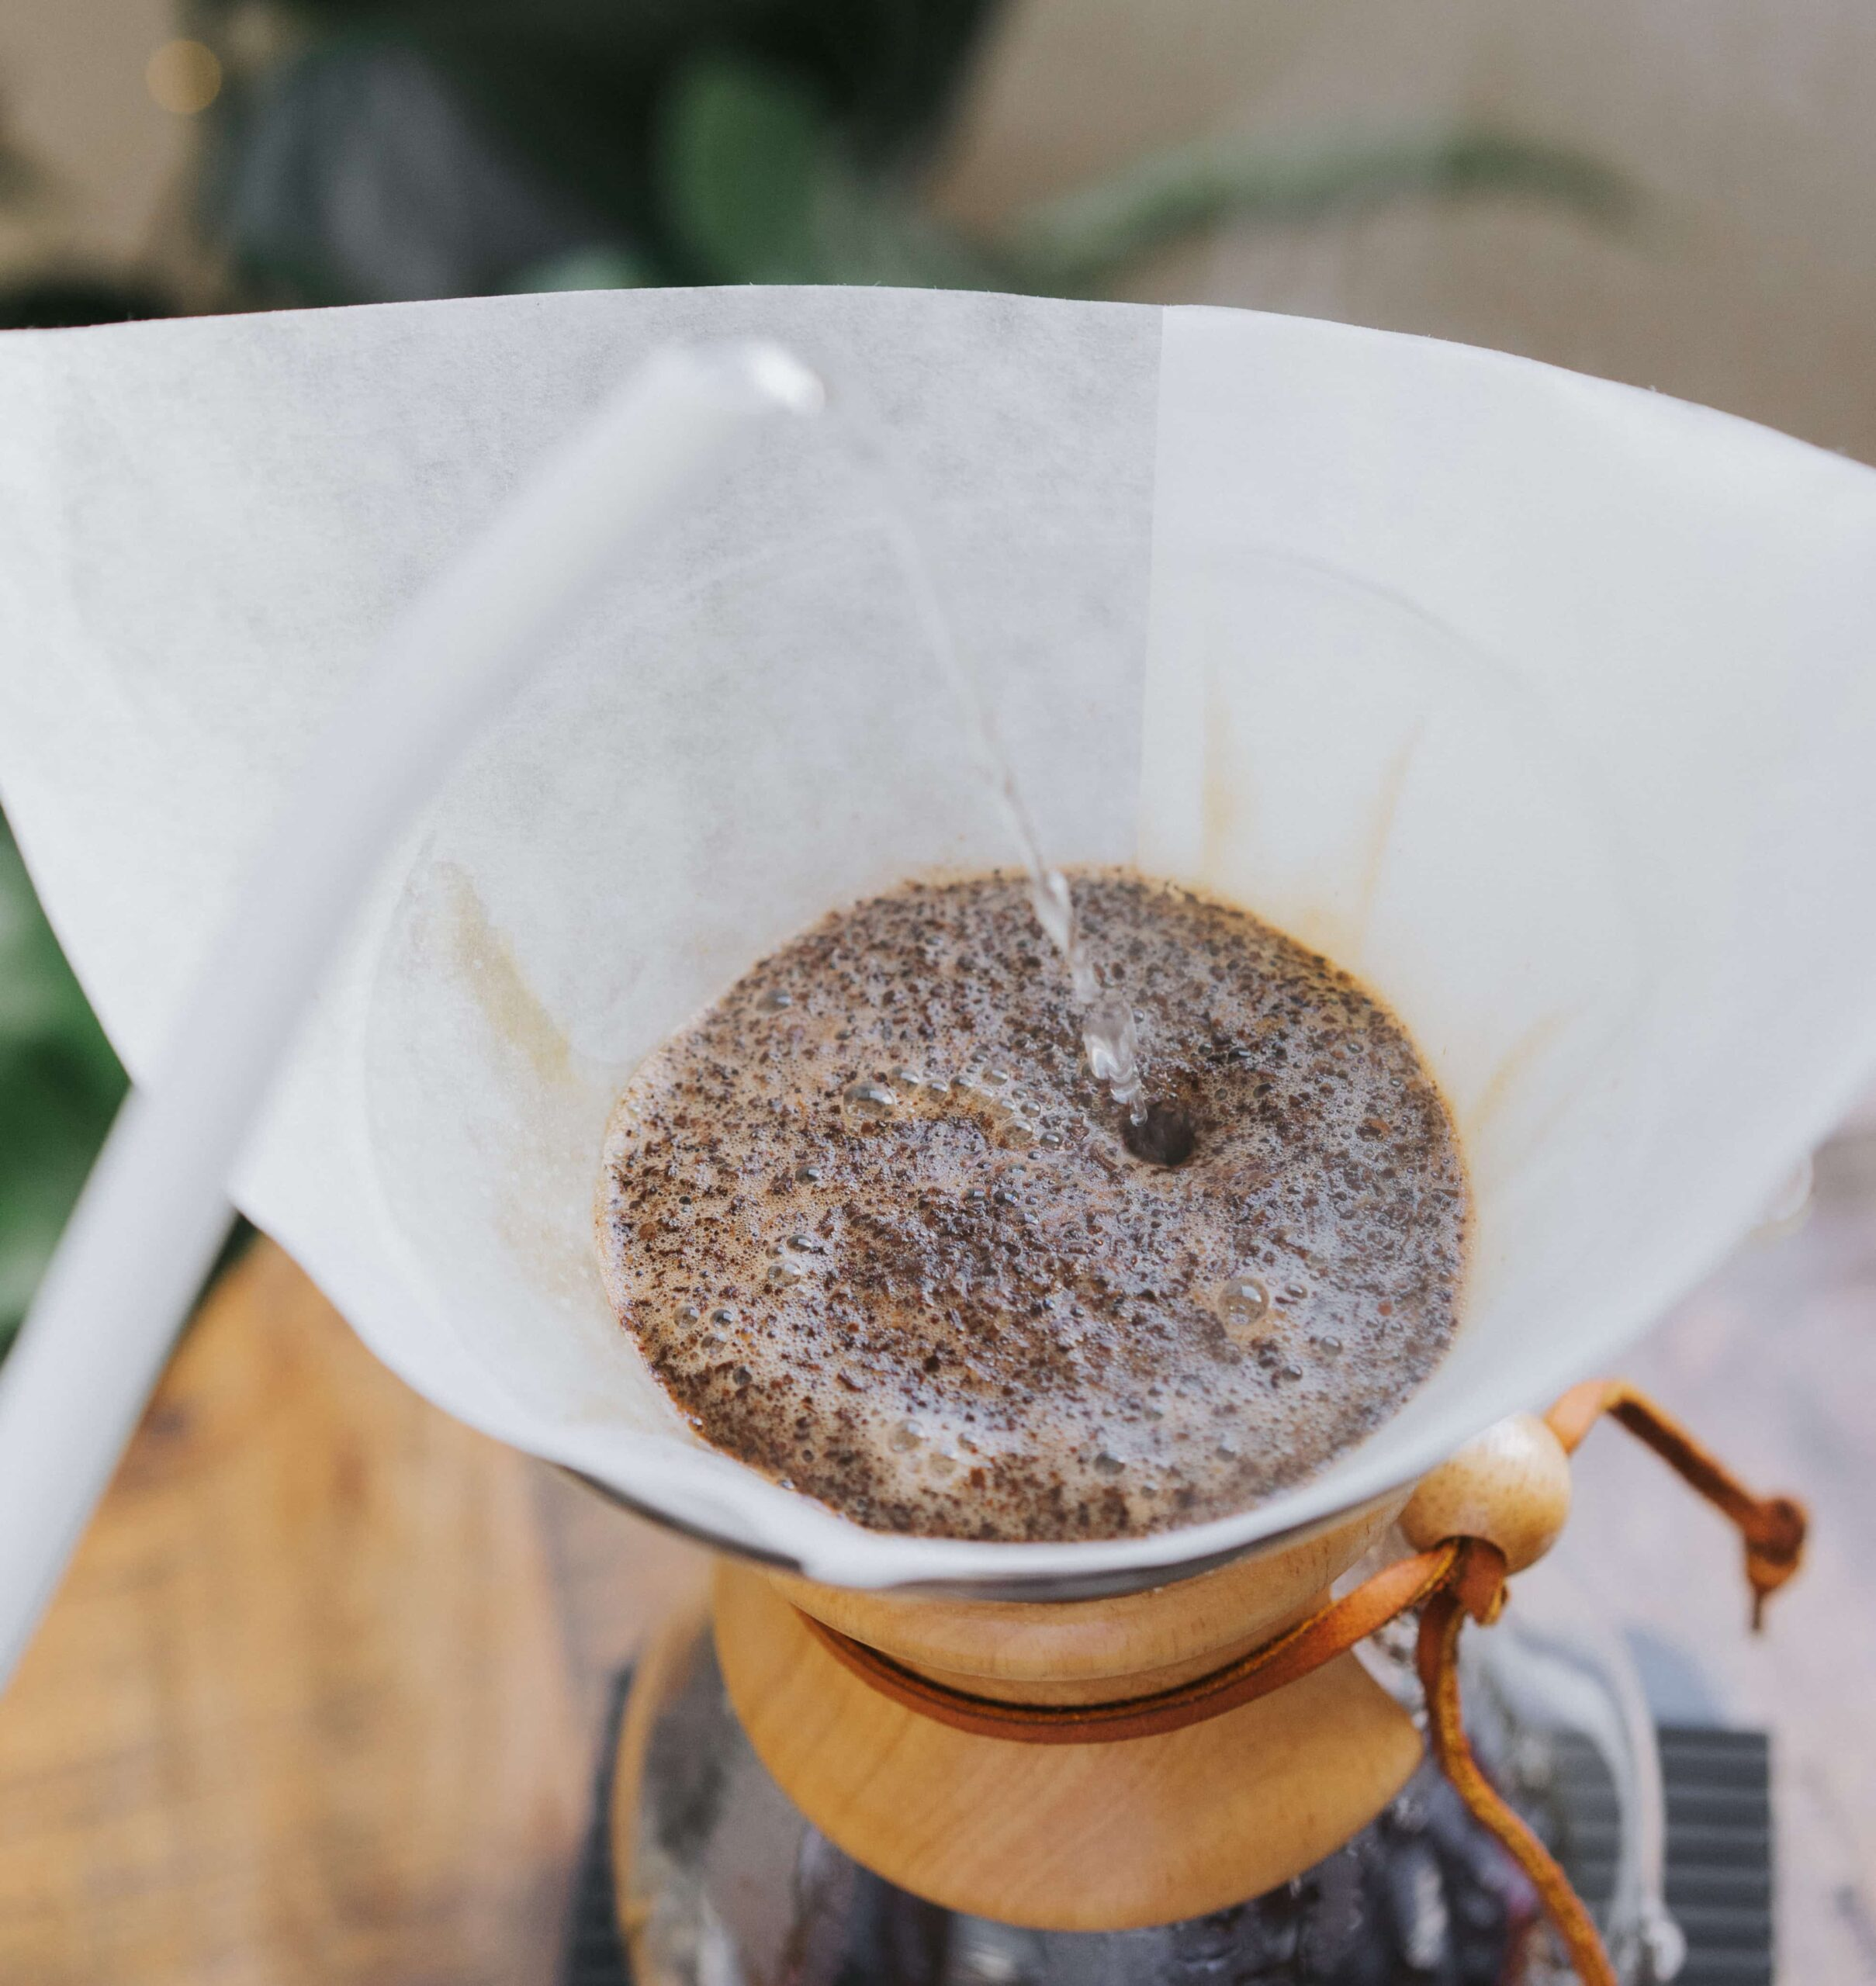 How To Make Chemex Coffee - Second Pour -